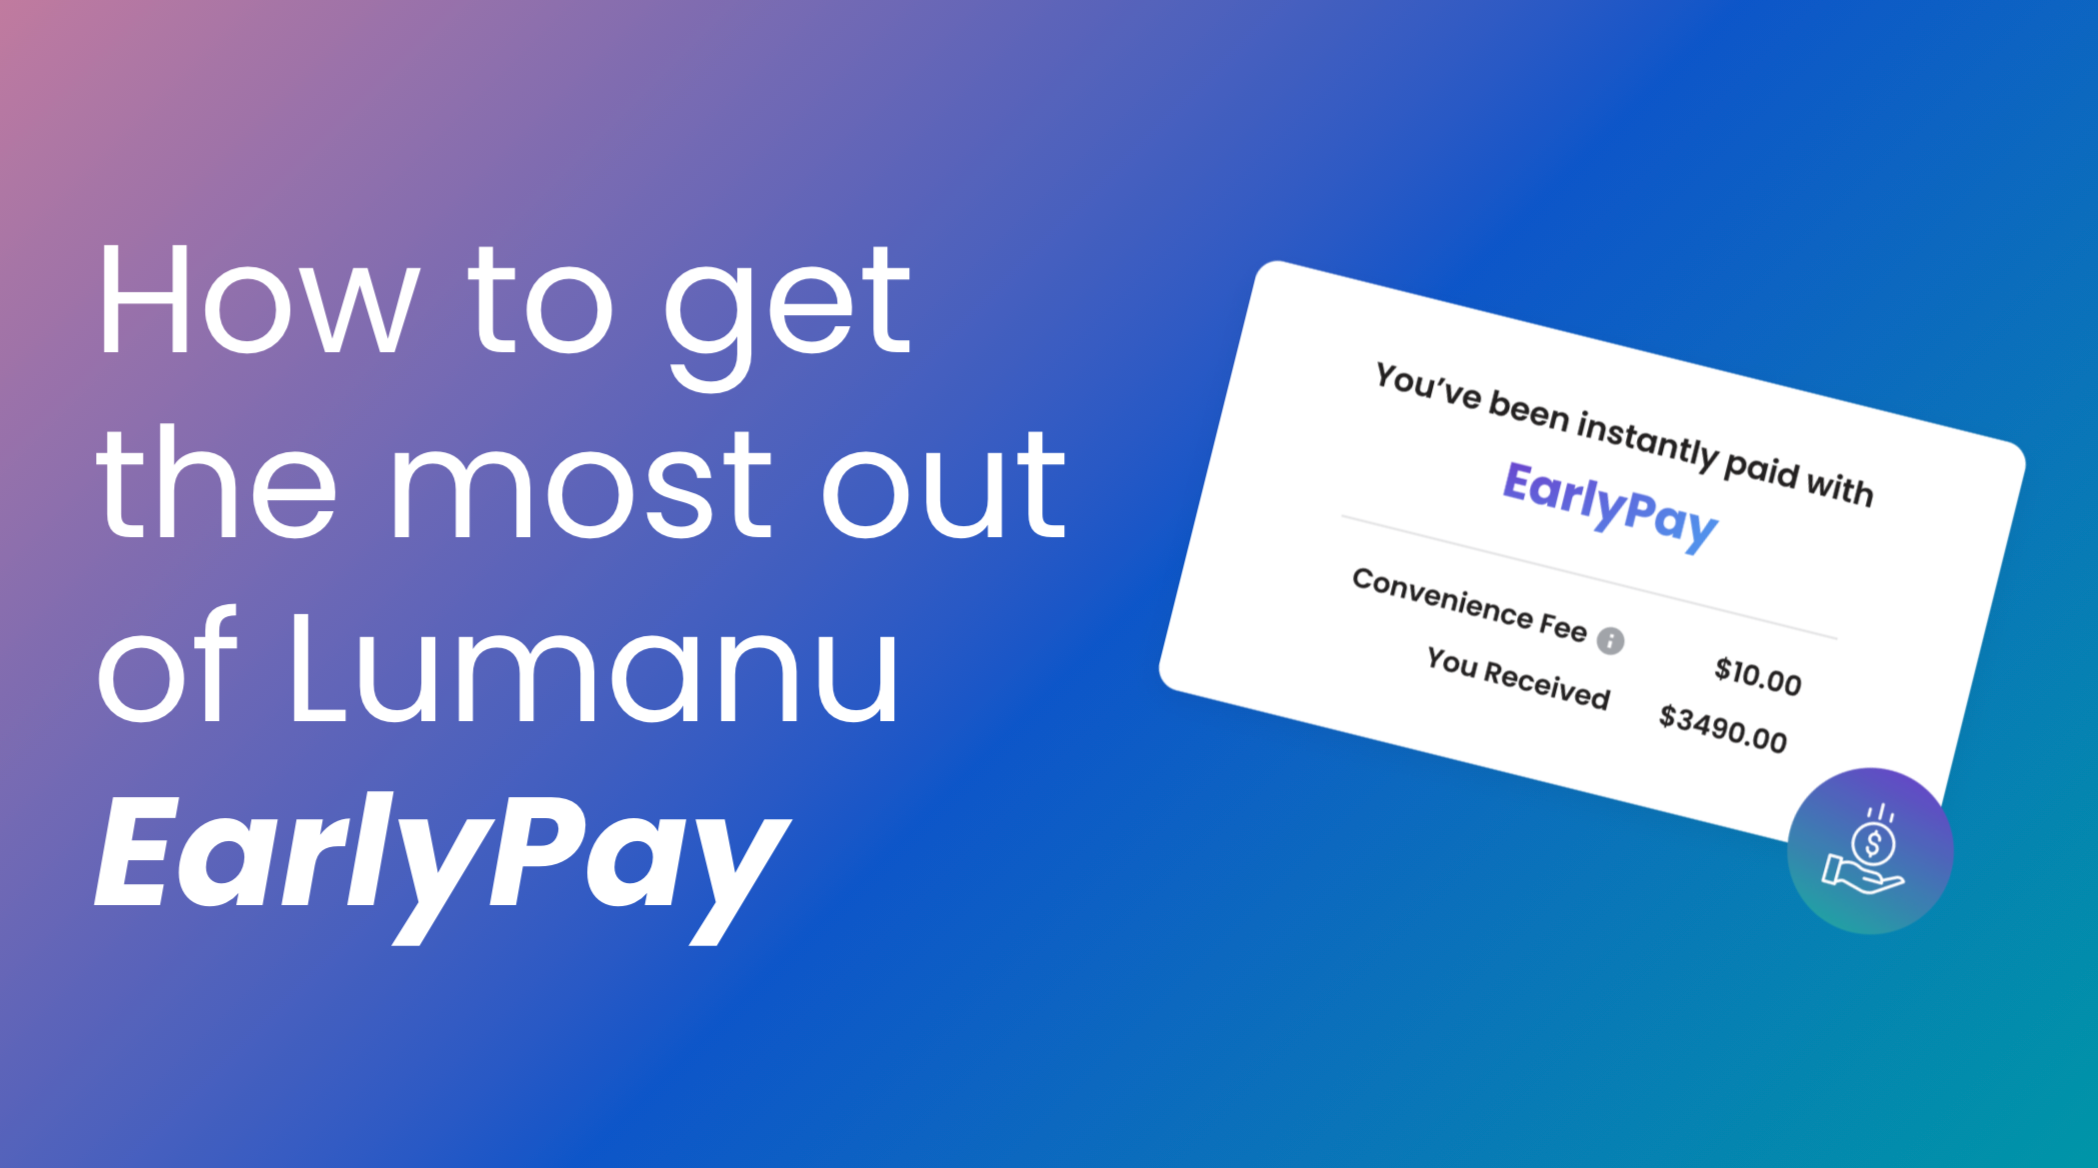 Lumanu EarlyPay offers creators and freelancers financial freedom and the option to get paid on their terms. With the lowest fees in the industry, EarlyPay gets creators paid for their brand collaborations instantly.